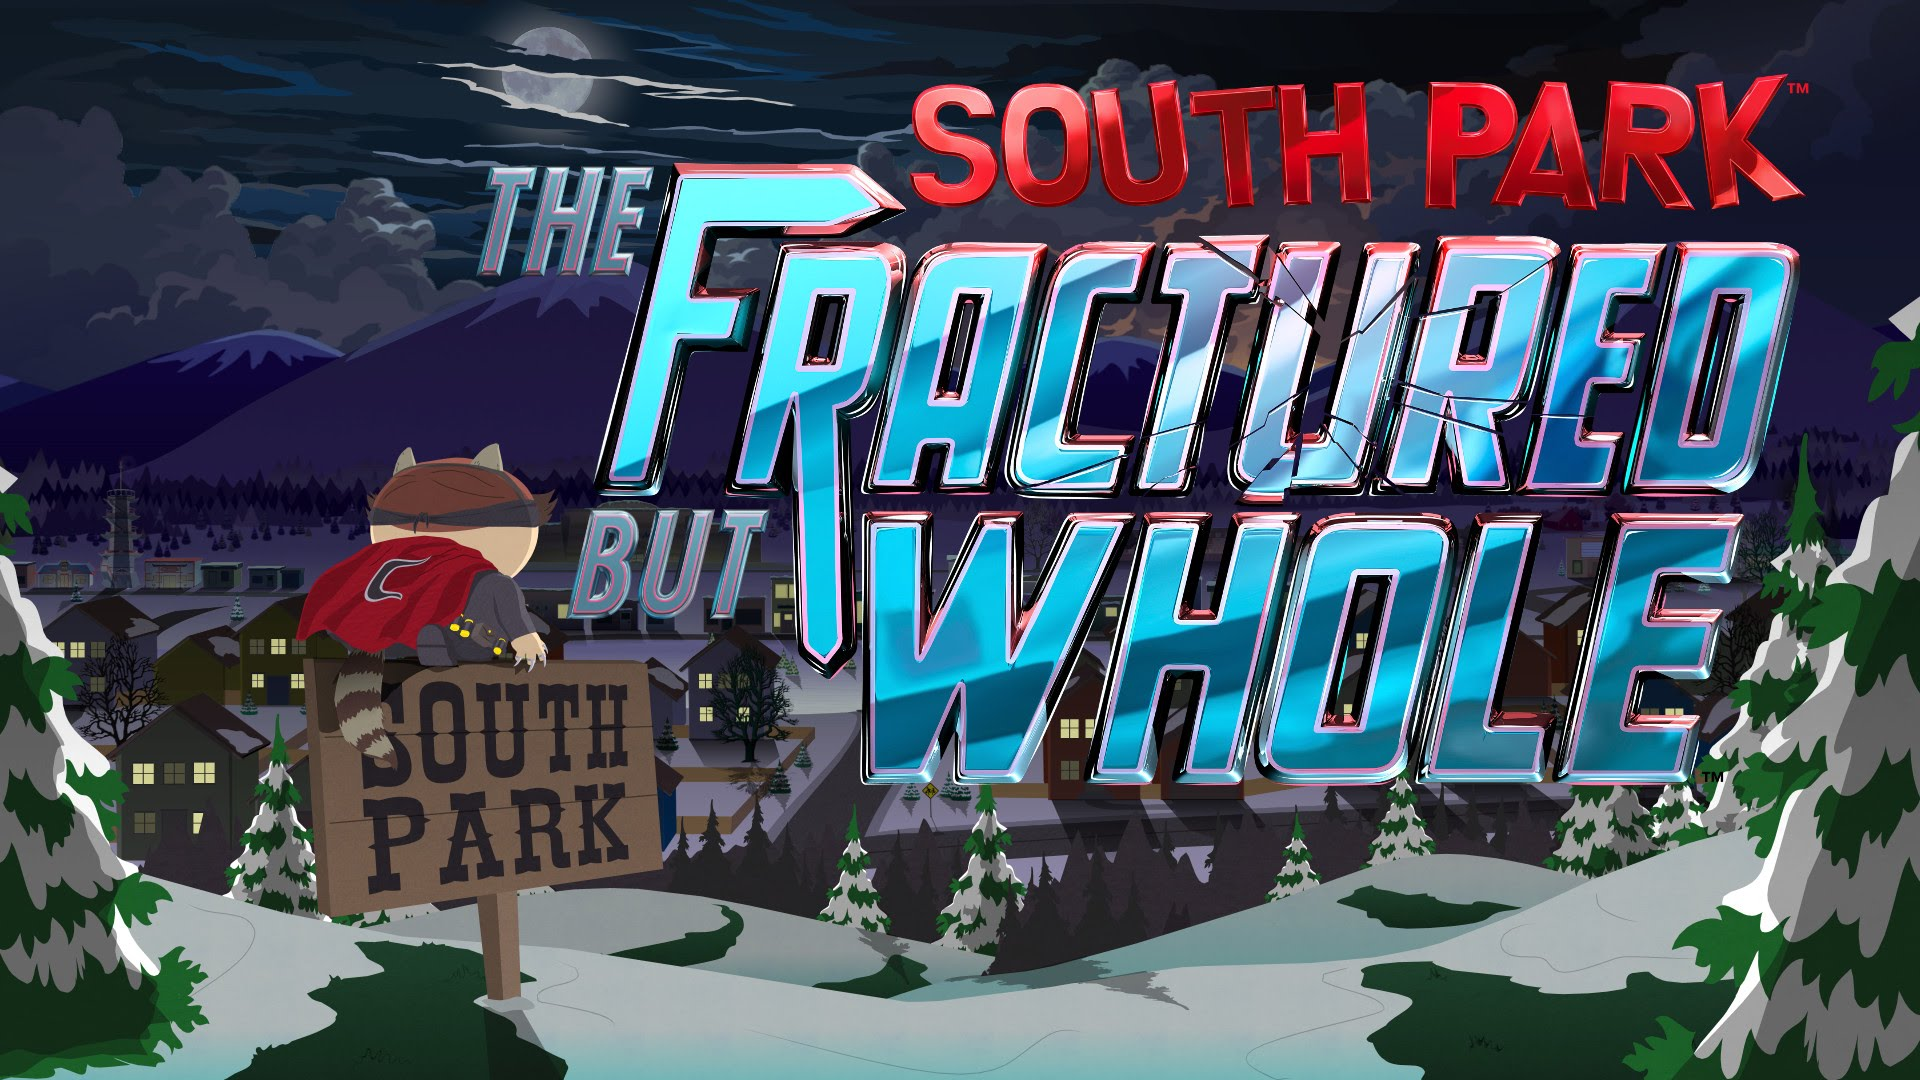 Tráiler de South Park: The Fractured but Whole presentado durante la Gamescom 2016